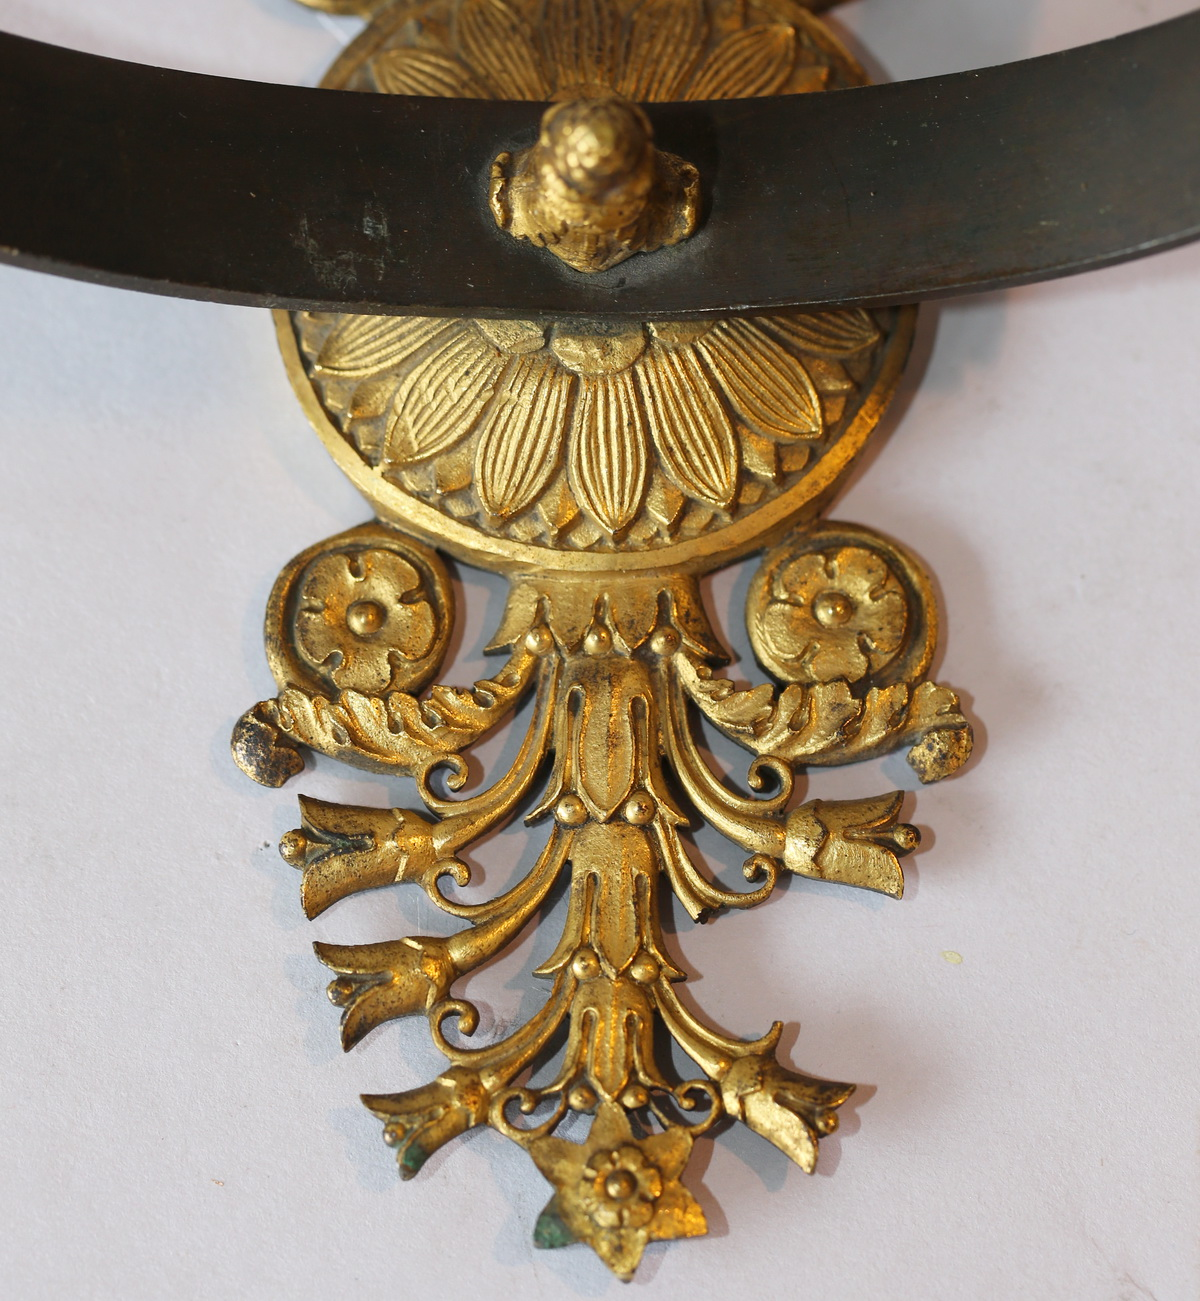 Pair of period Empire wall sconces